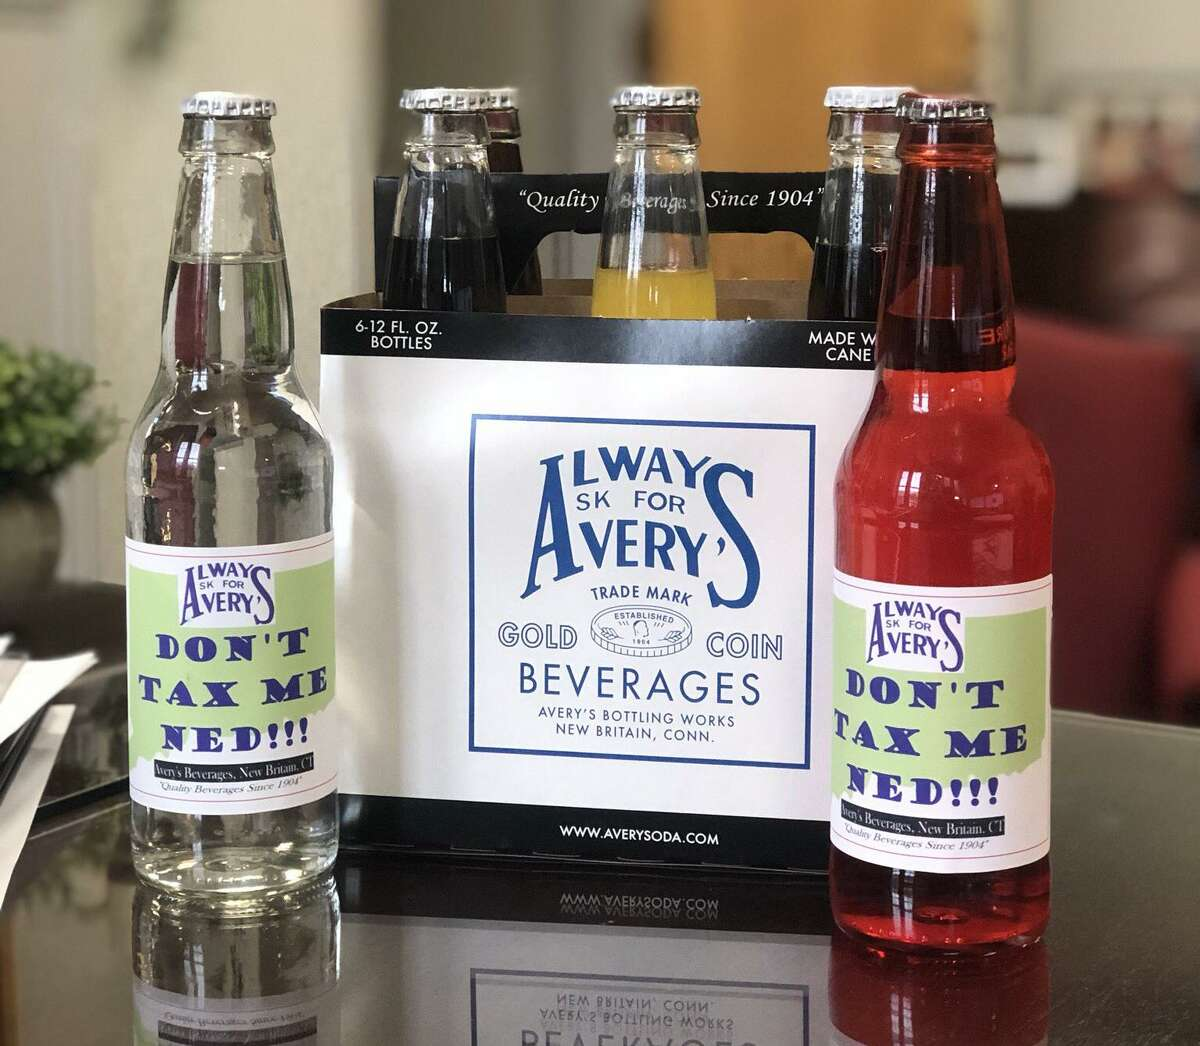 """A long-time New Britain independent soda manufacturer has found a way to express its displeasure with Gov. Ned Lamont's proposed tax on soda. Avery's Beverages, in business on Corbin Avenue in New Britain for more than a century is producing a limited edition """"Don't Tax Me Ned!"""" brand that the company hopes to deliver to the legislature."""